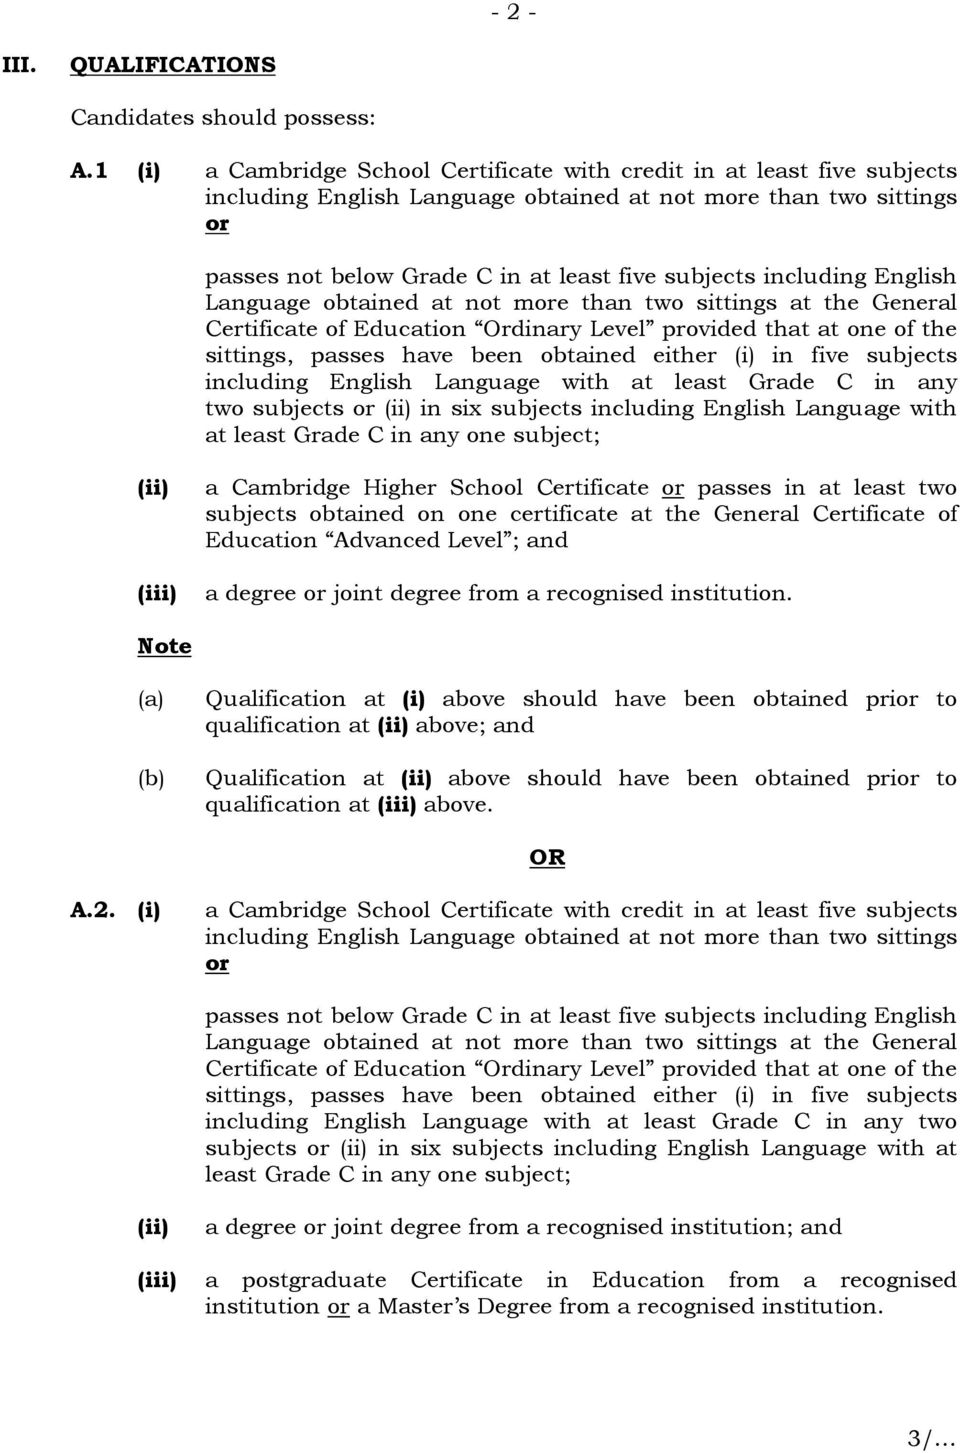 including English Language obtained at not more than two sittings at the General Certificate of Education Ordinary Level provided that at one of the sittings, passes have been obtained either (i) in